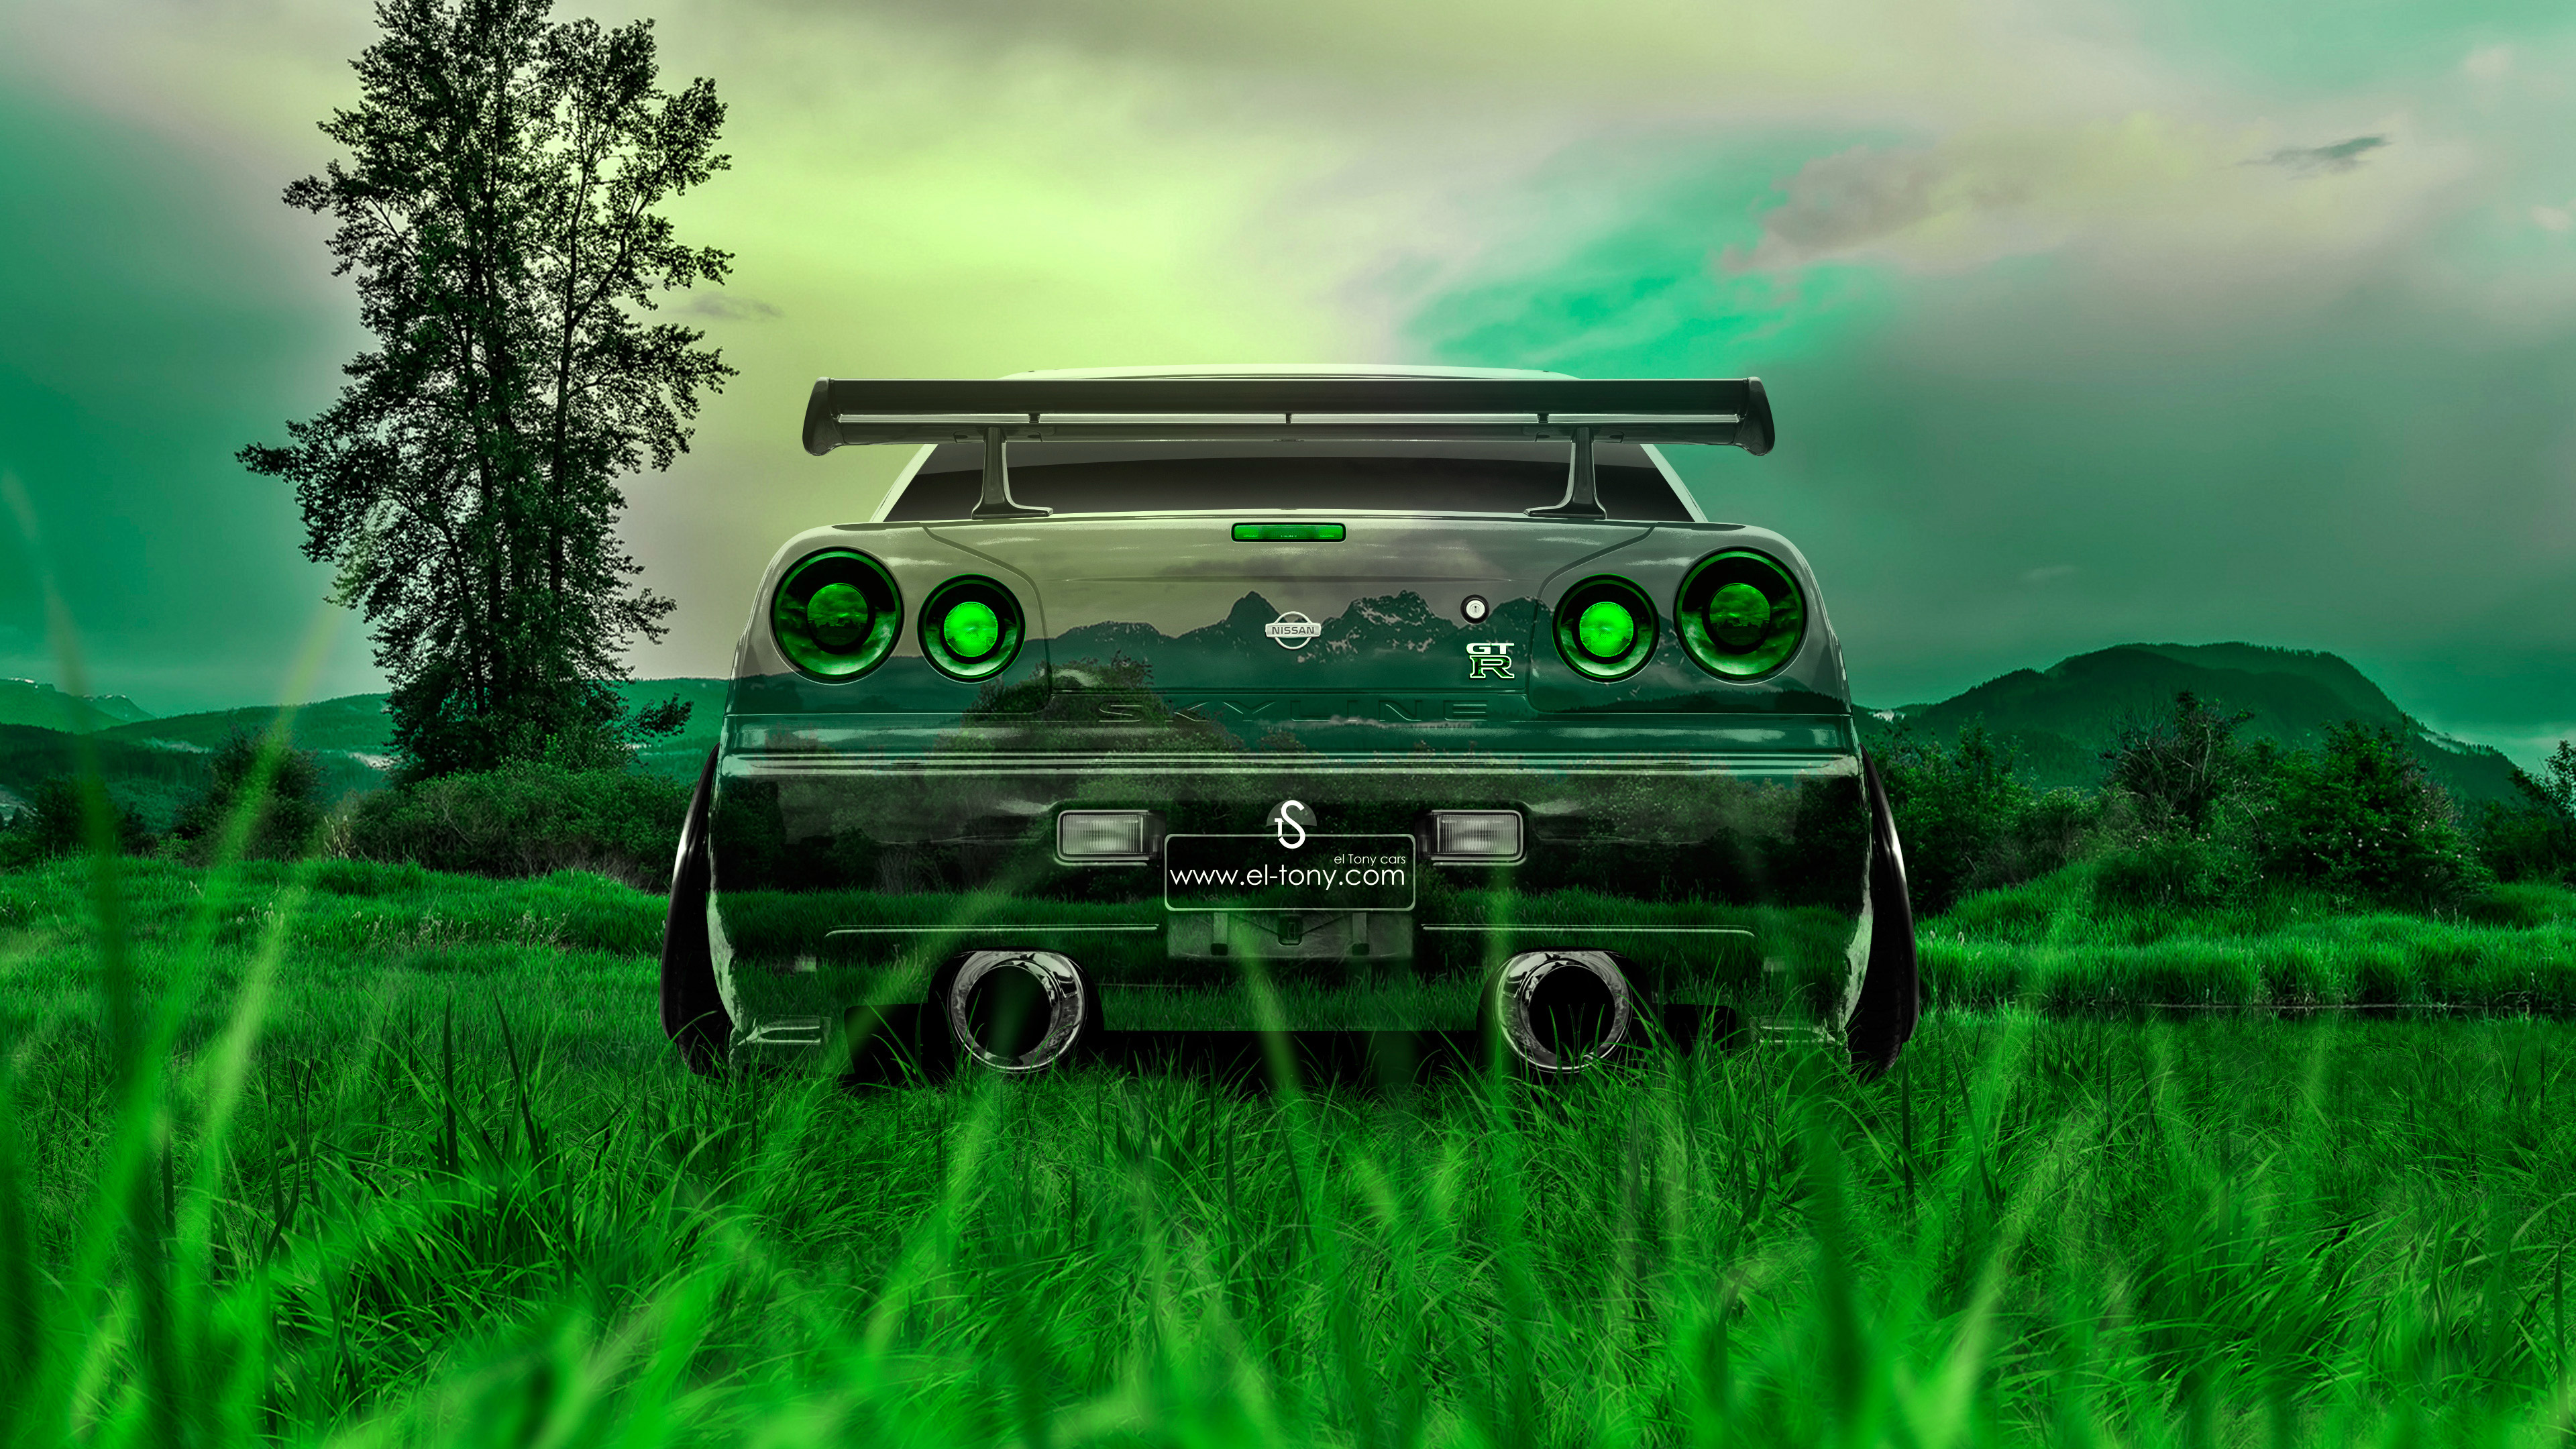 Back Crystal Nature Car 2015 Fantasy Green Grass Style 4K Wallpapers  3840x2160